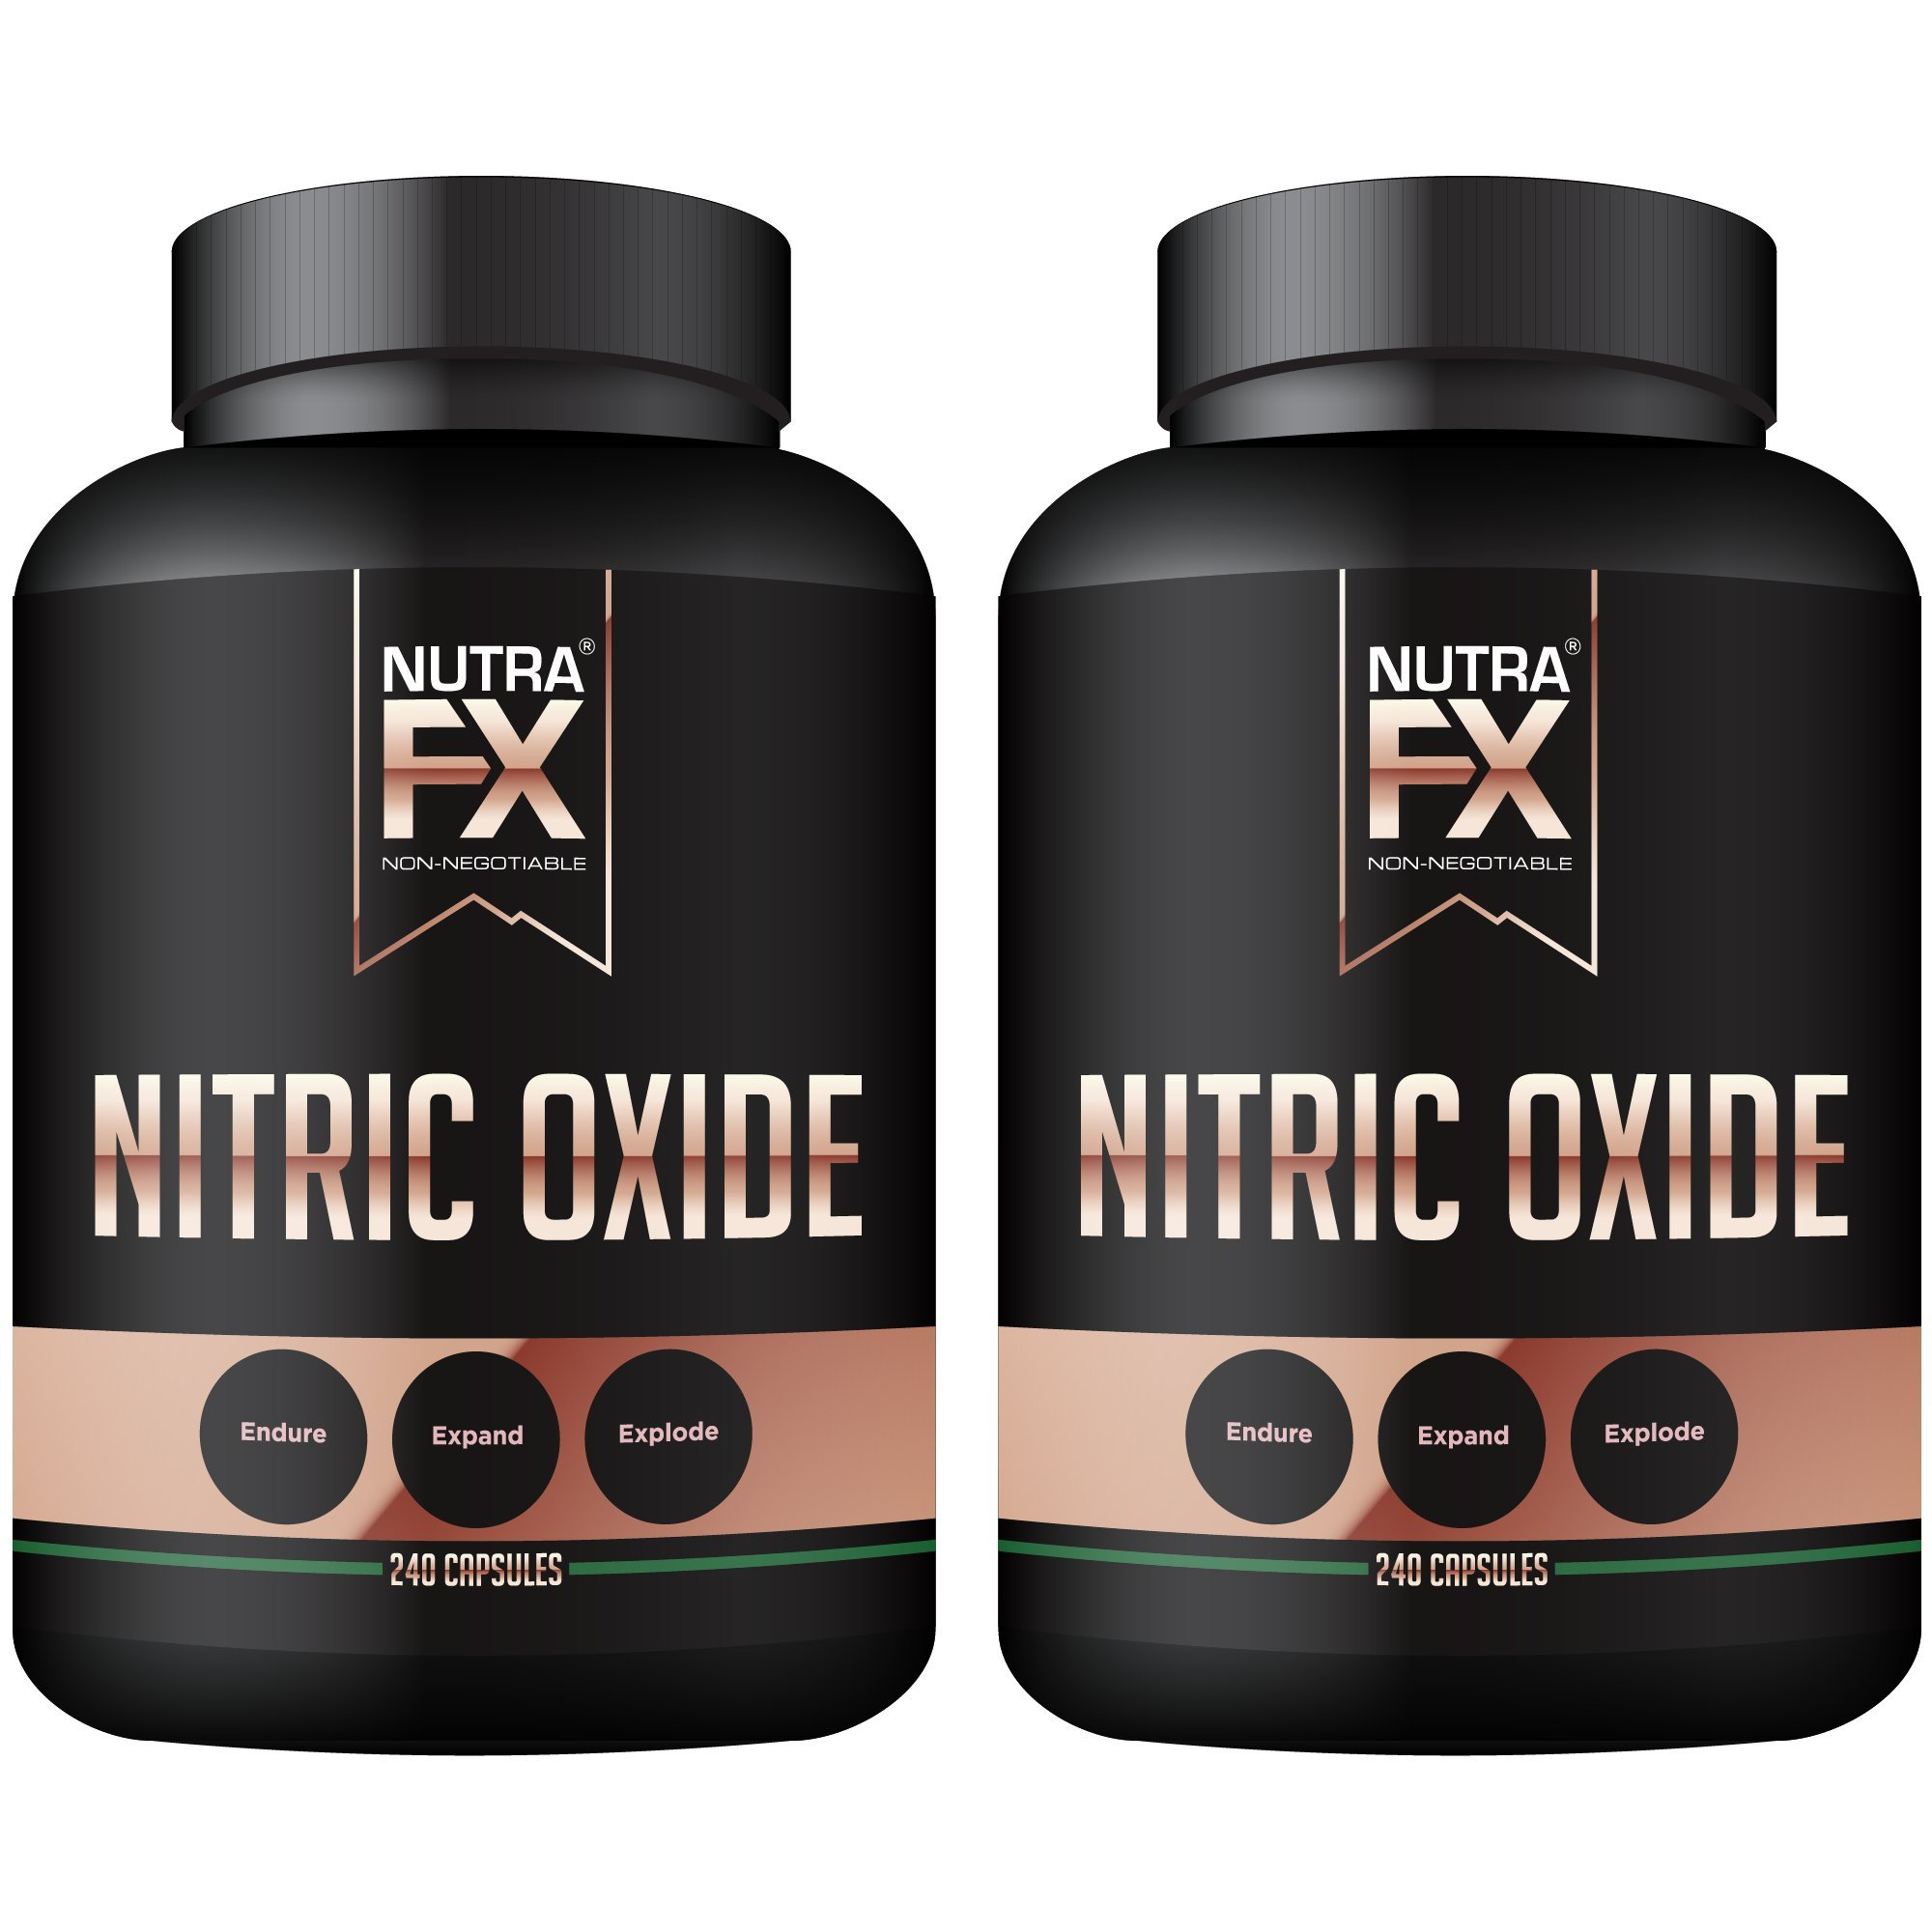 NutraFX Nitric Oxide Booster Capsules (2-Pack)